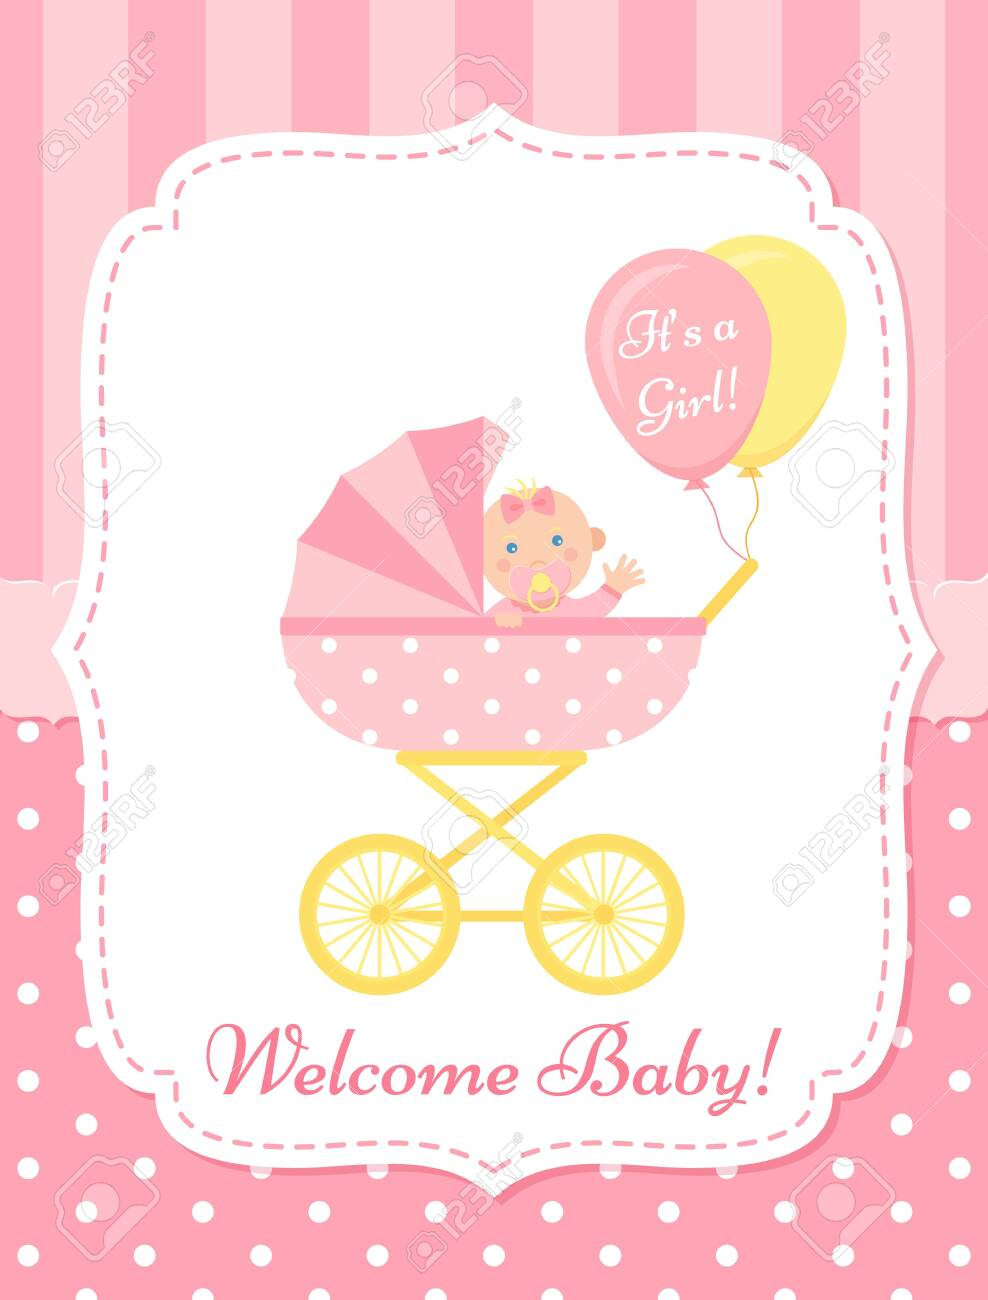 Baby Girl Card Vector Baby Shower Invite Banner Pink Design Royalty Free Cliparts Vectors And Stock Illustration Image 122953471